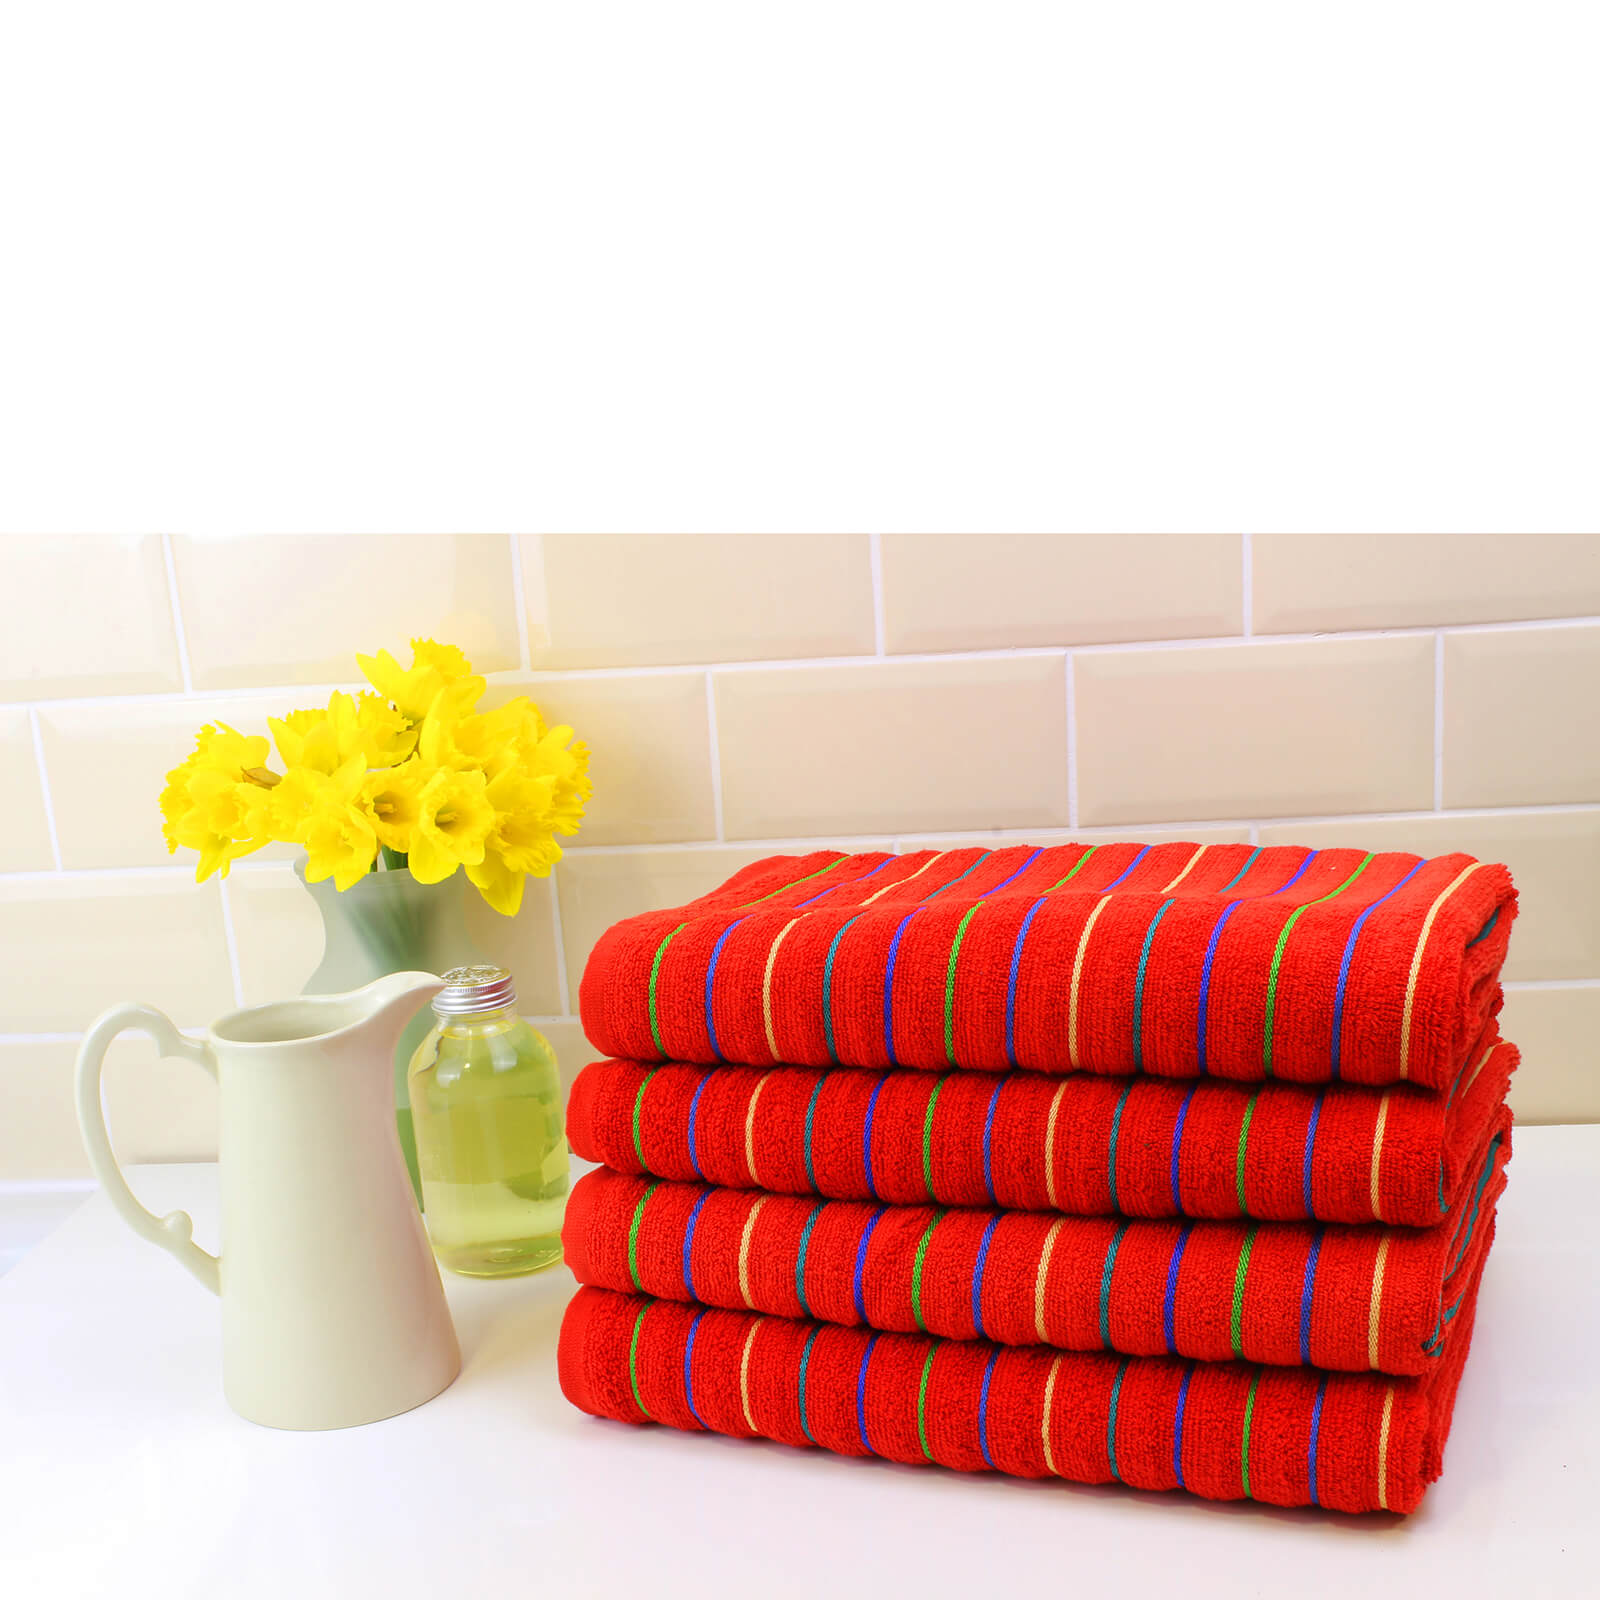 Restmor 100% Cotton 4 Pack Bath Sheets (500 GSM) - Red